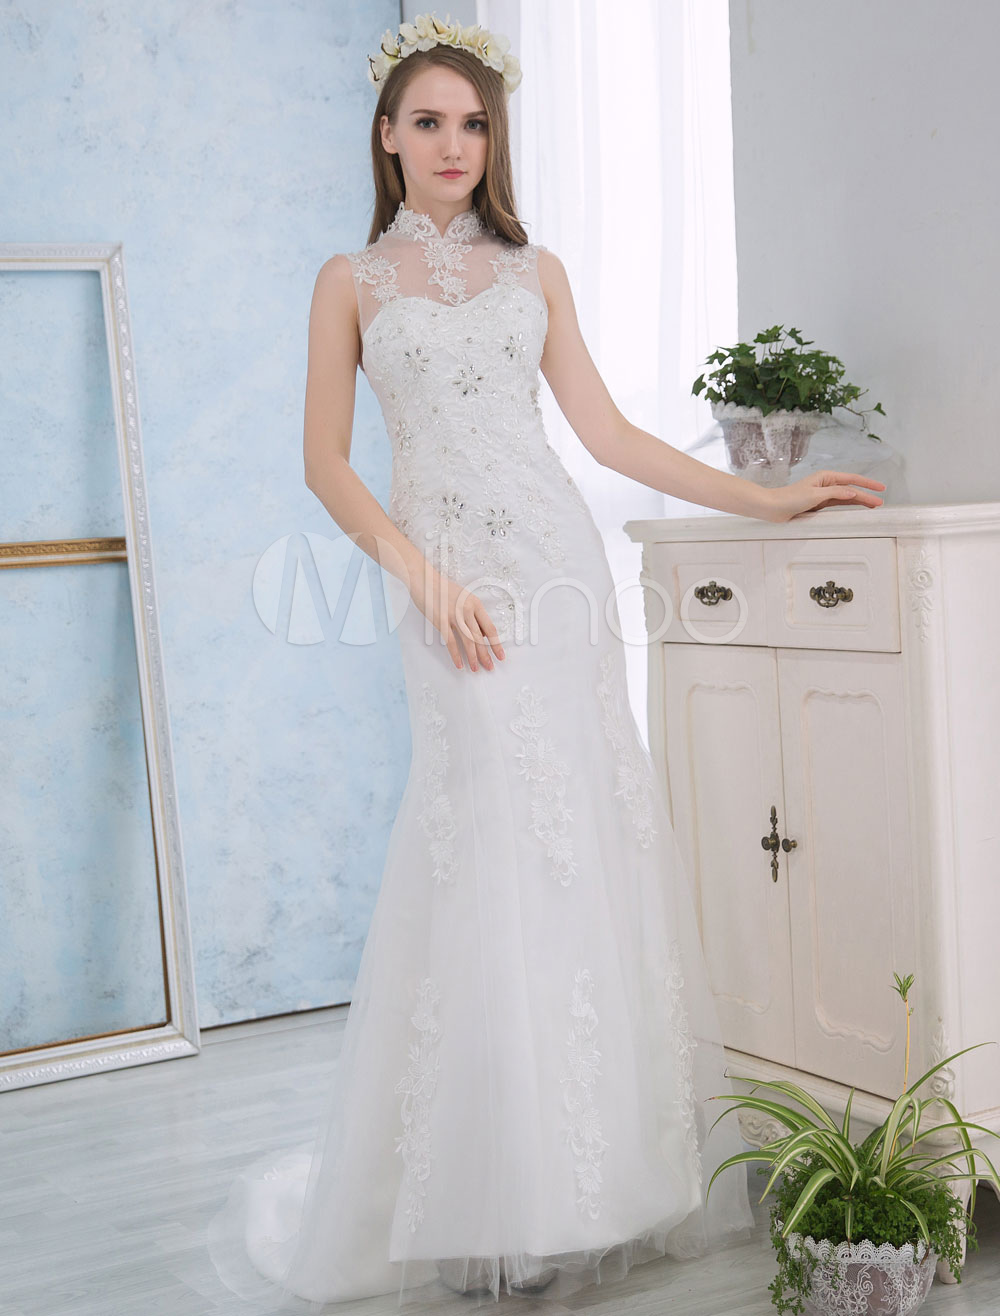 Buy Ivory Wedding Dresses Lace Applique Mermaid Bridal Dress Beading Stand Collar Open Back Wedding Gown With Train for $162.79 in Milanoo store